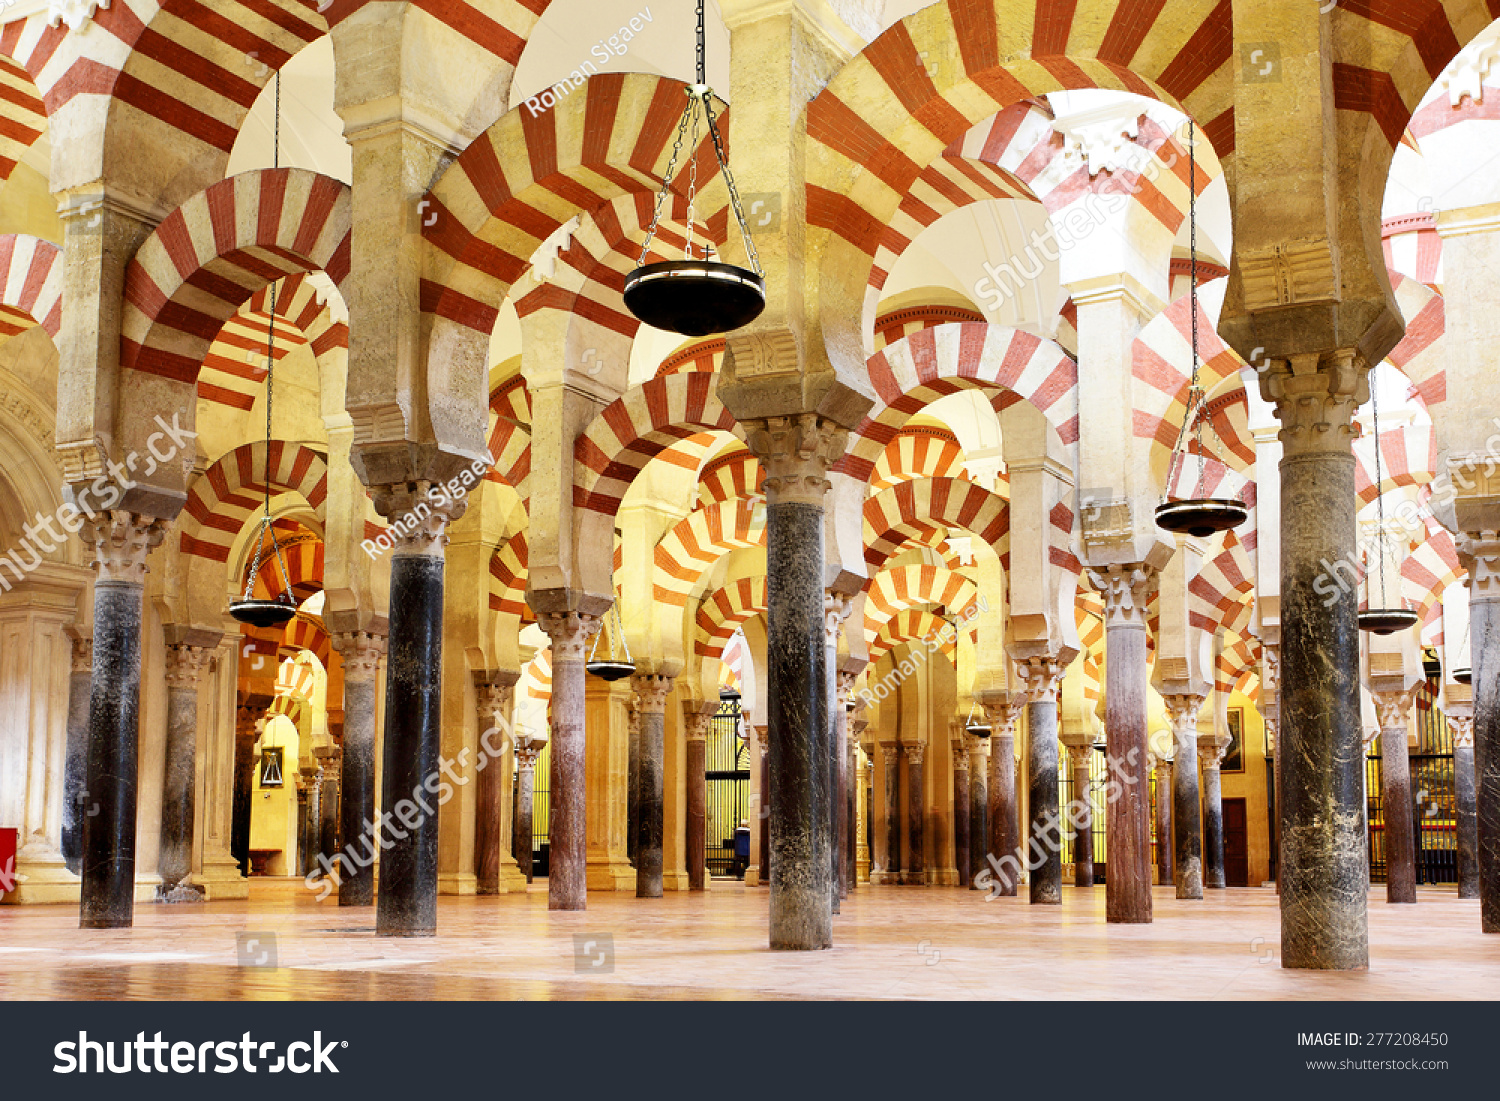 Cordoba Spain March 12 2013 Interior Stock Photo 277208450 - Shutterstock